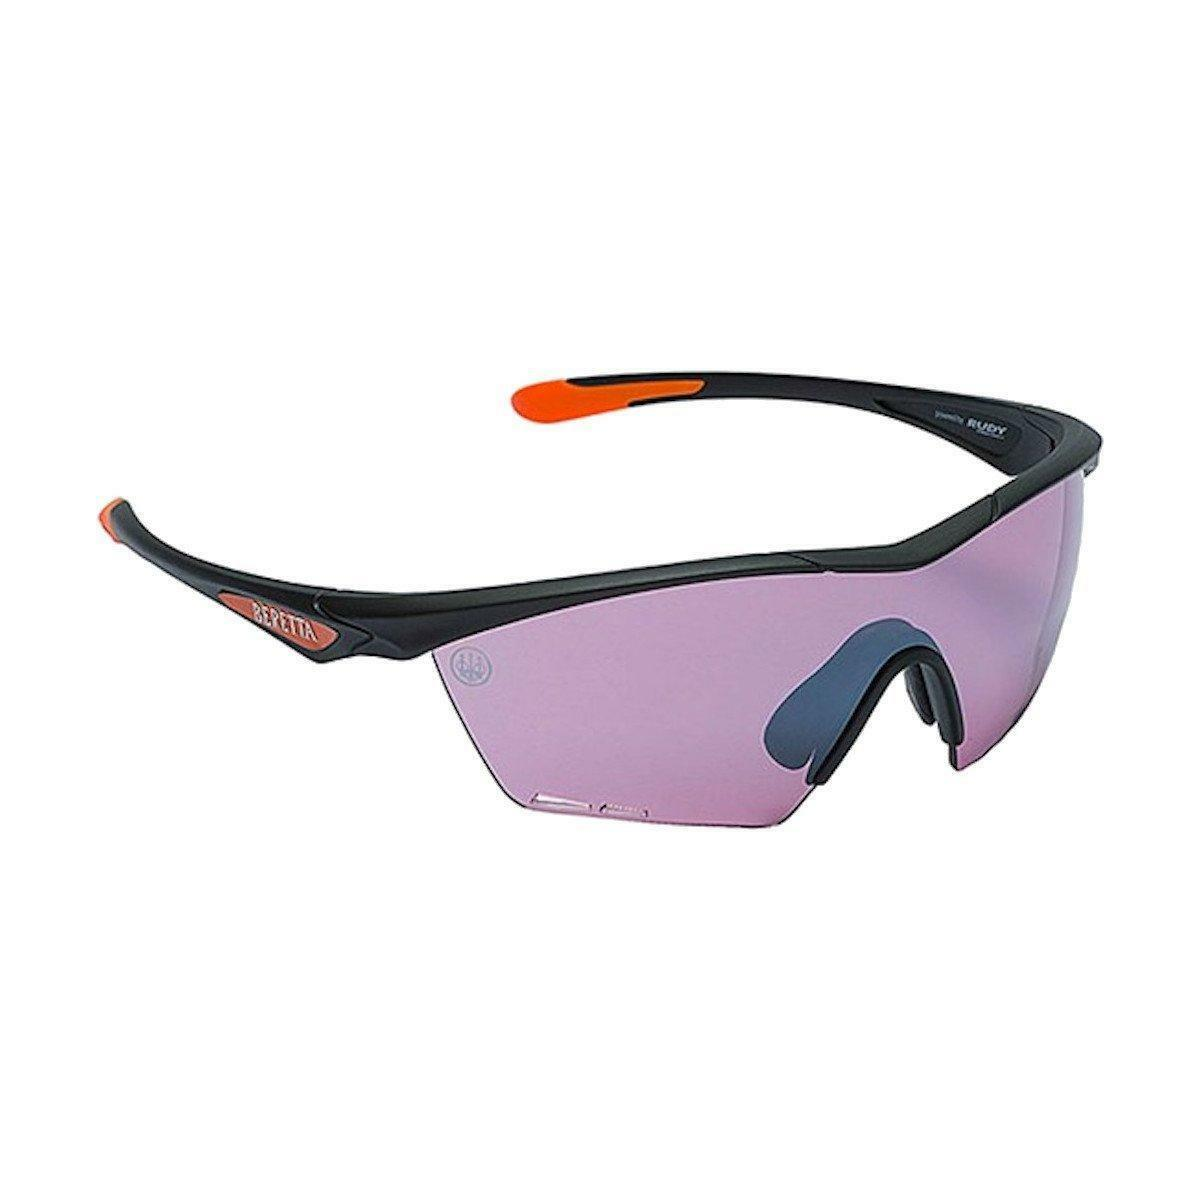 Beretta Light Purple Shooting Safety Glasses Clash by Rudy Project OC031-039A